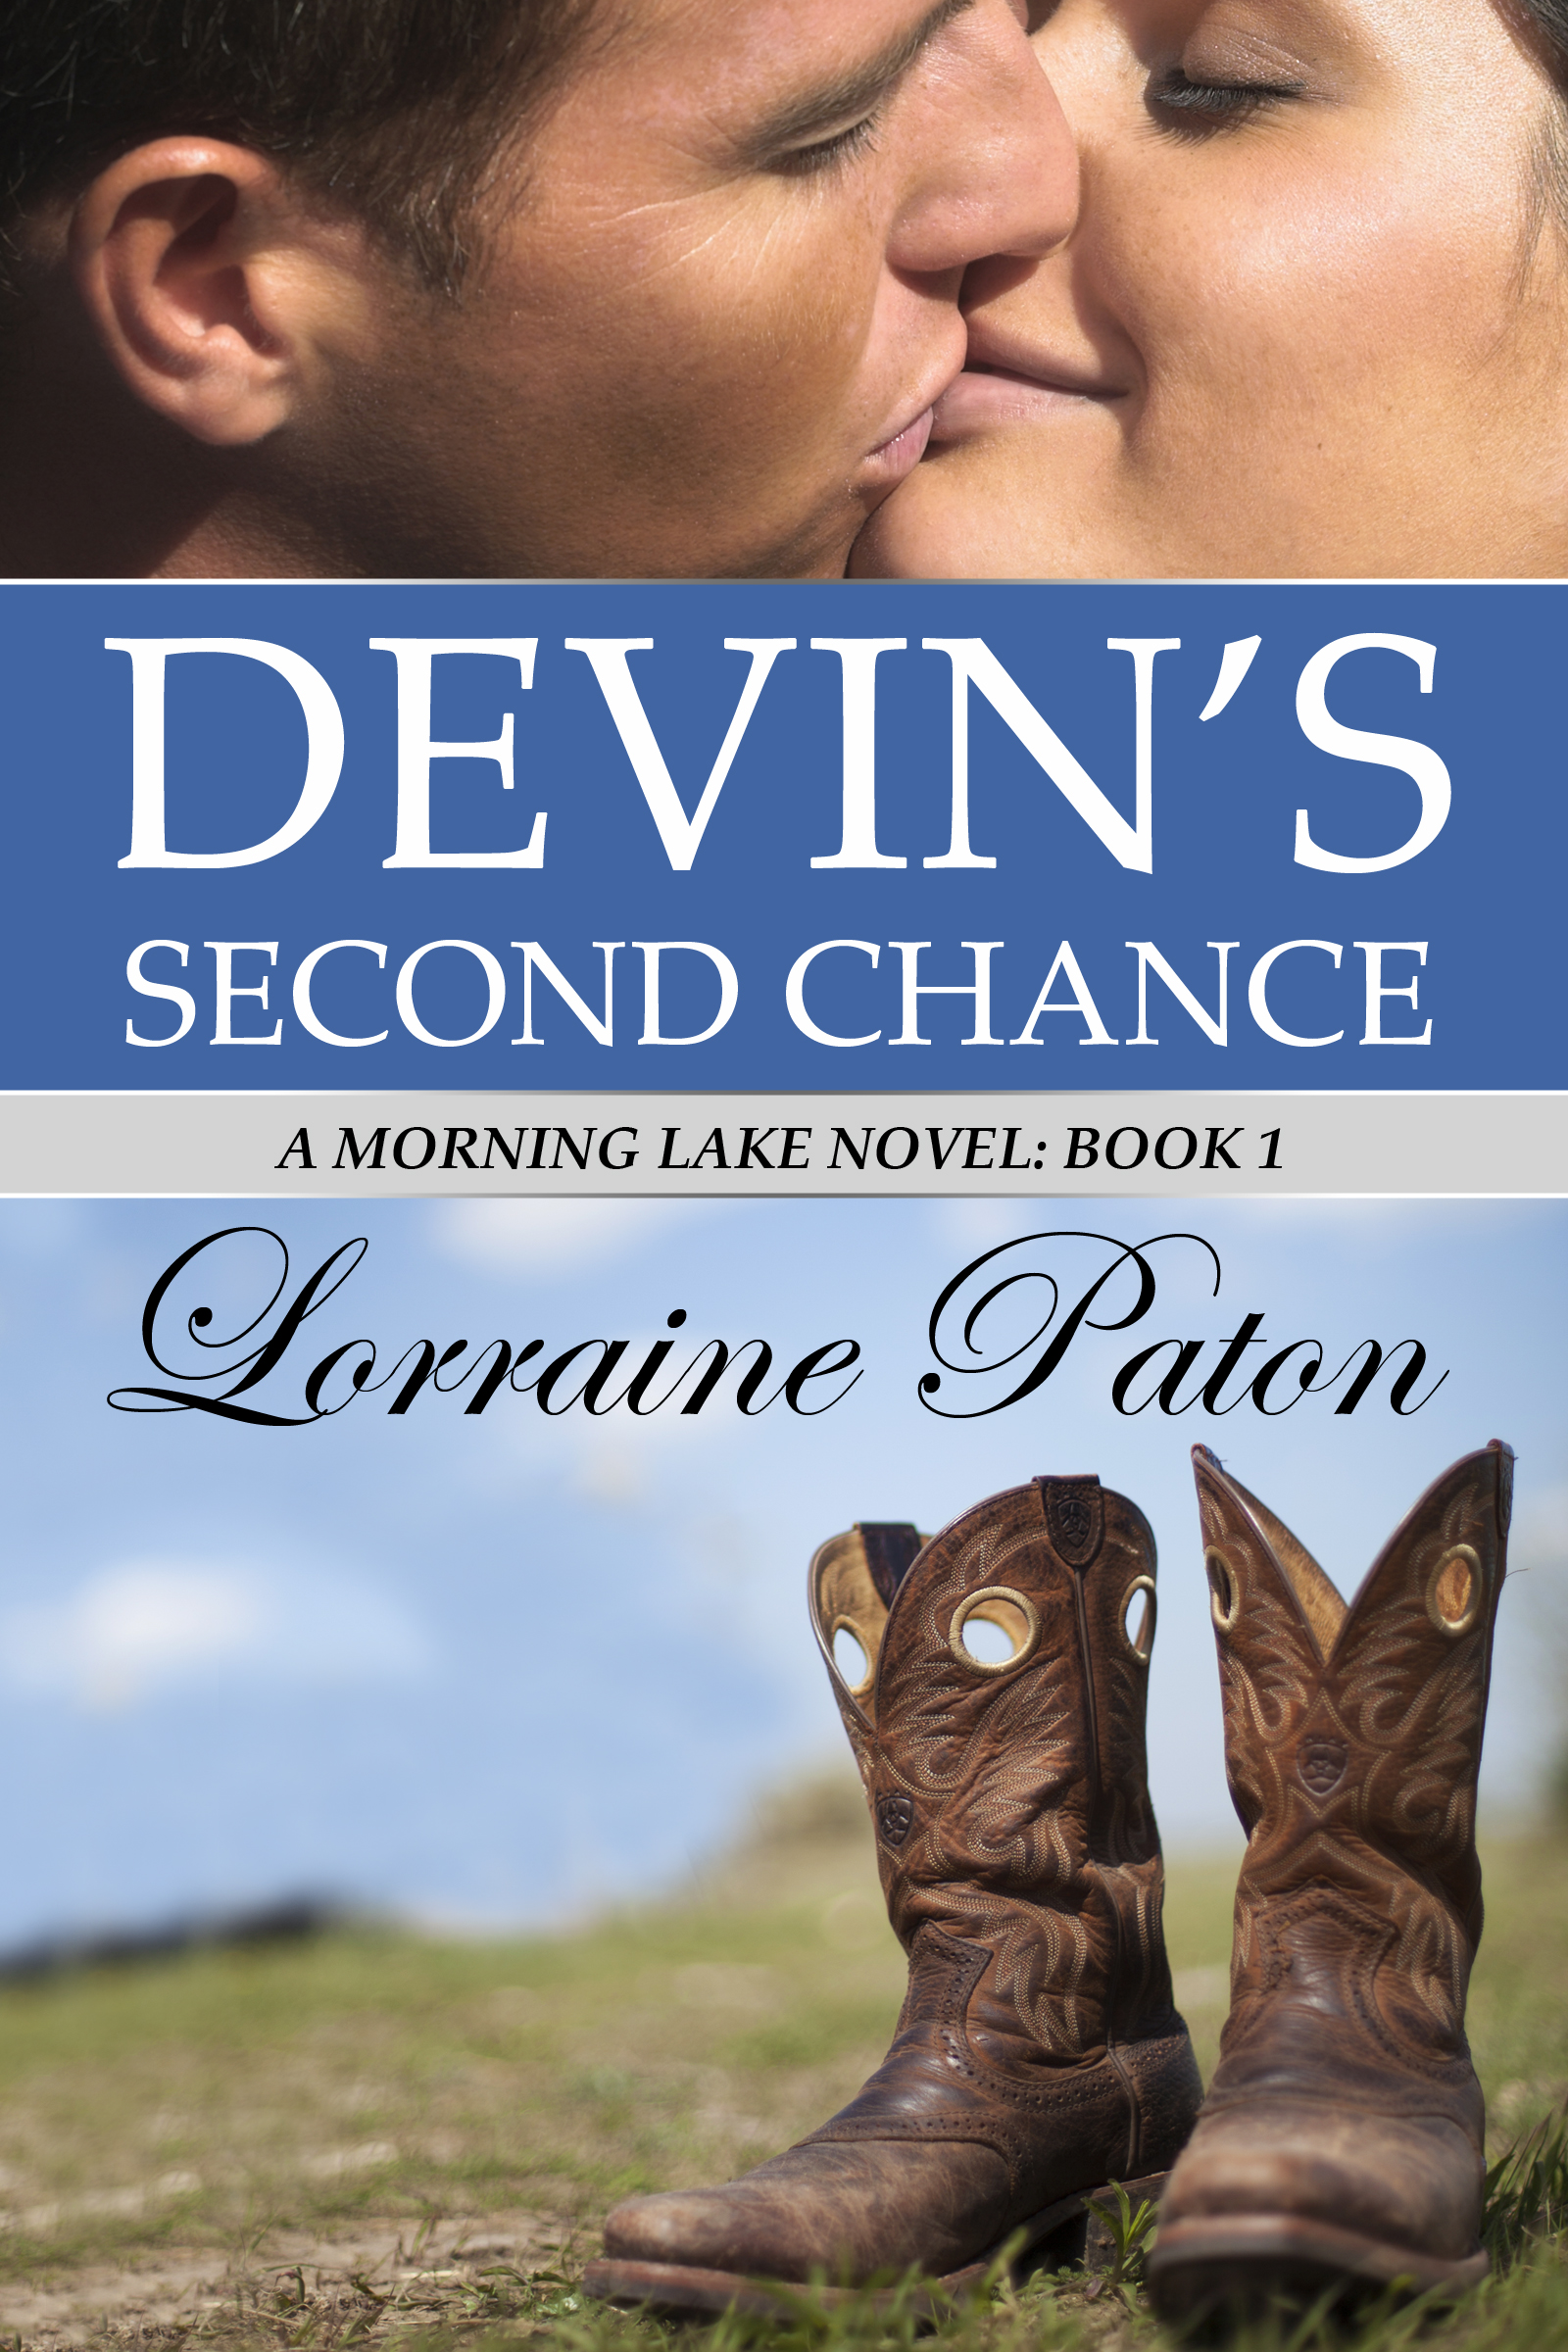 Book cover for Devin's Second Chance